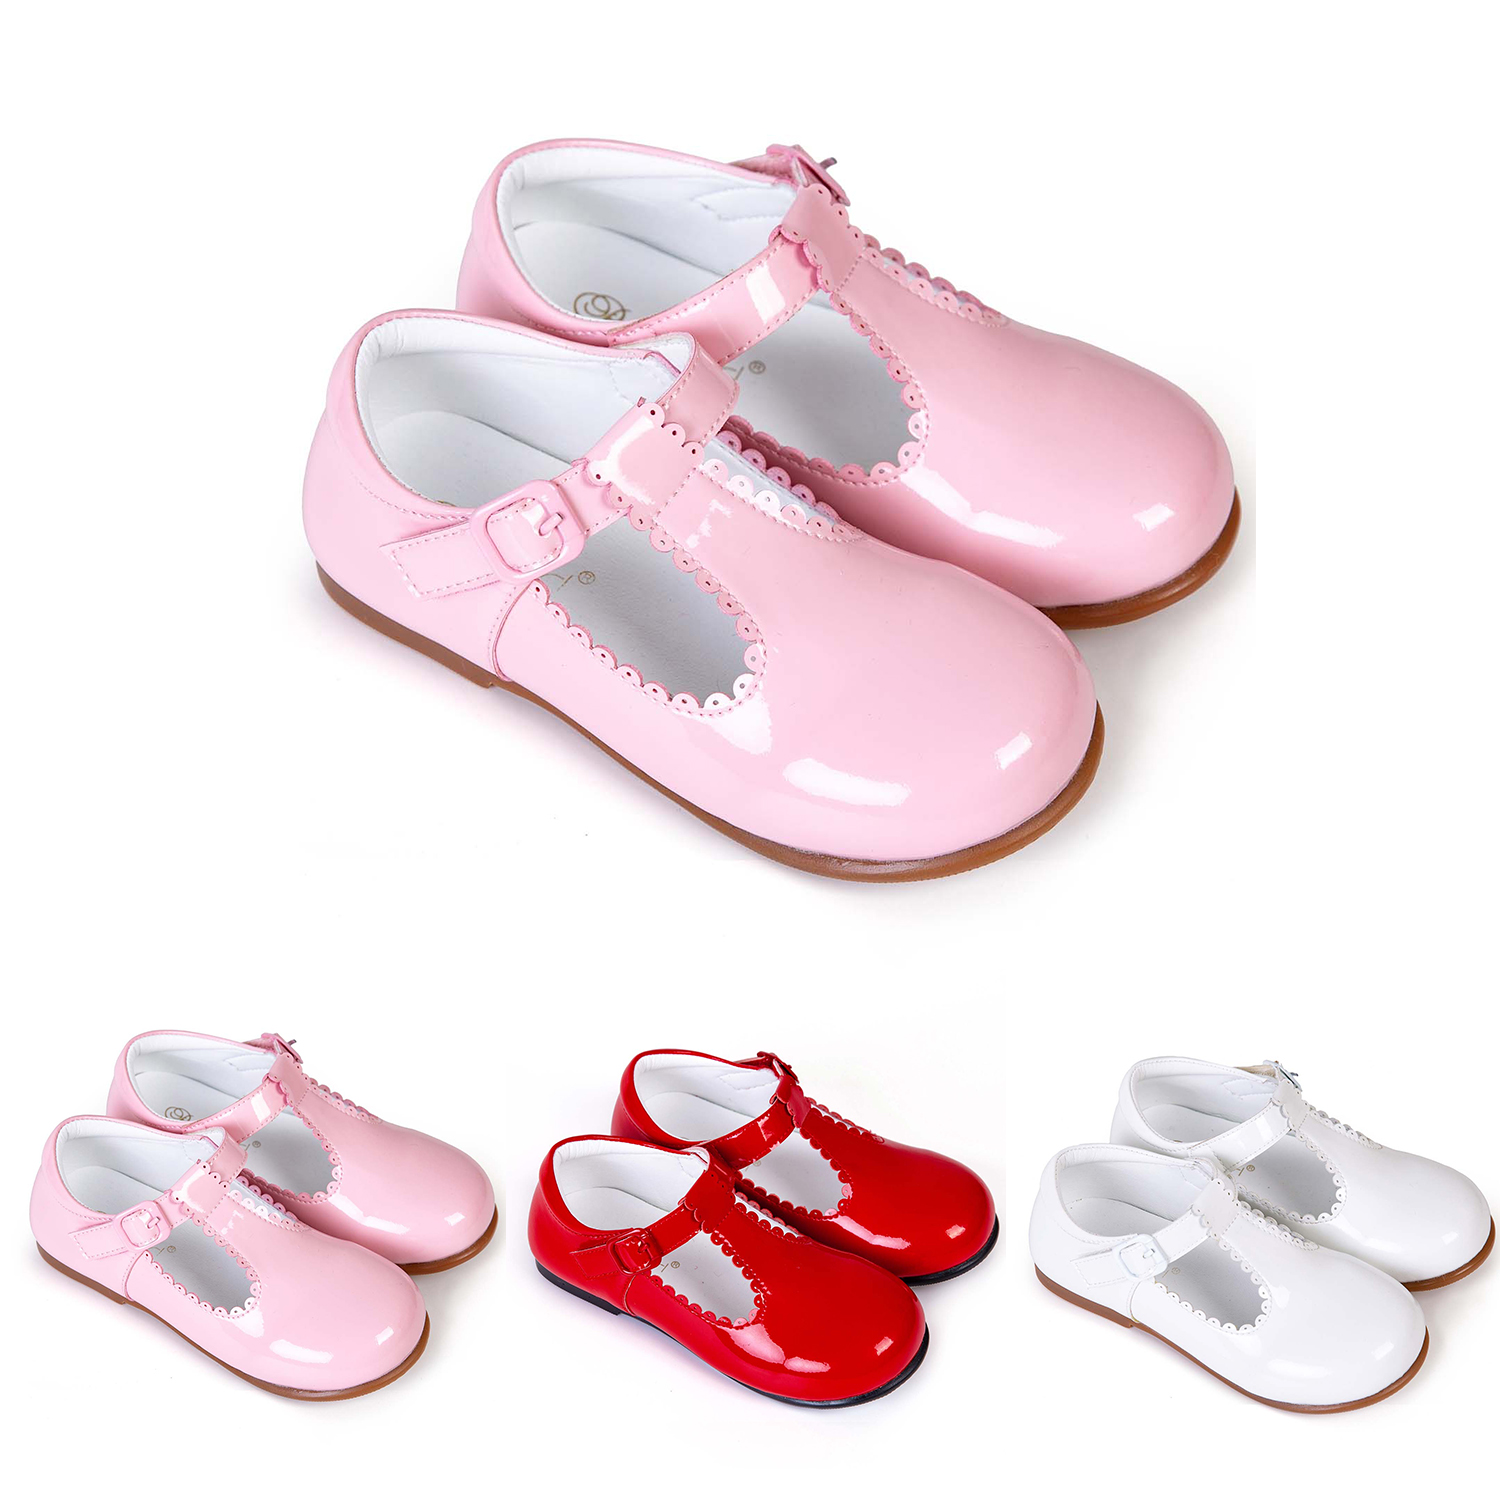 8808a01484 Spanish School Shoes Princess Party Flat Shoes Kids Girls Leather ...